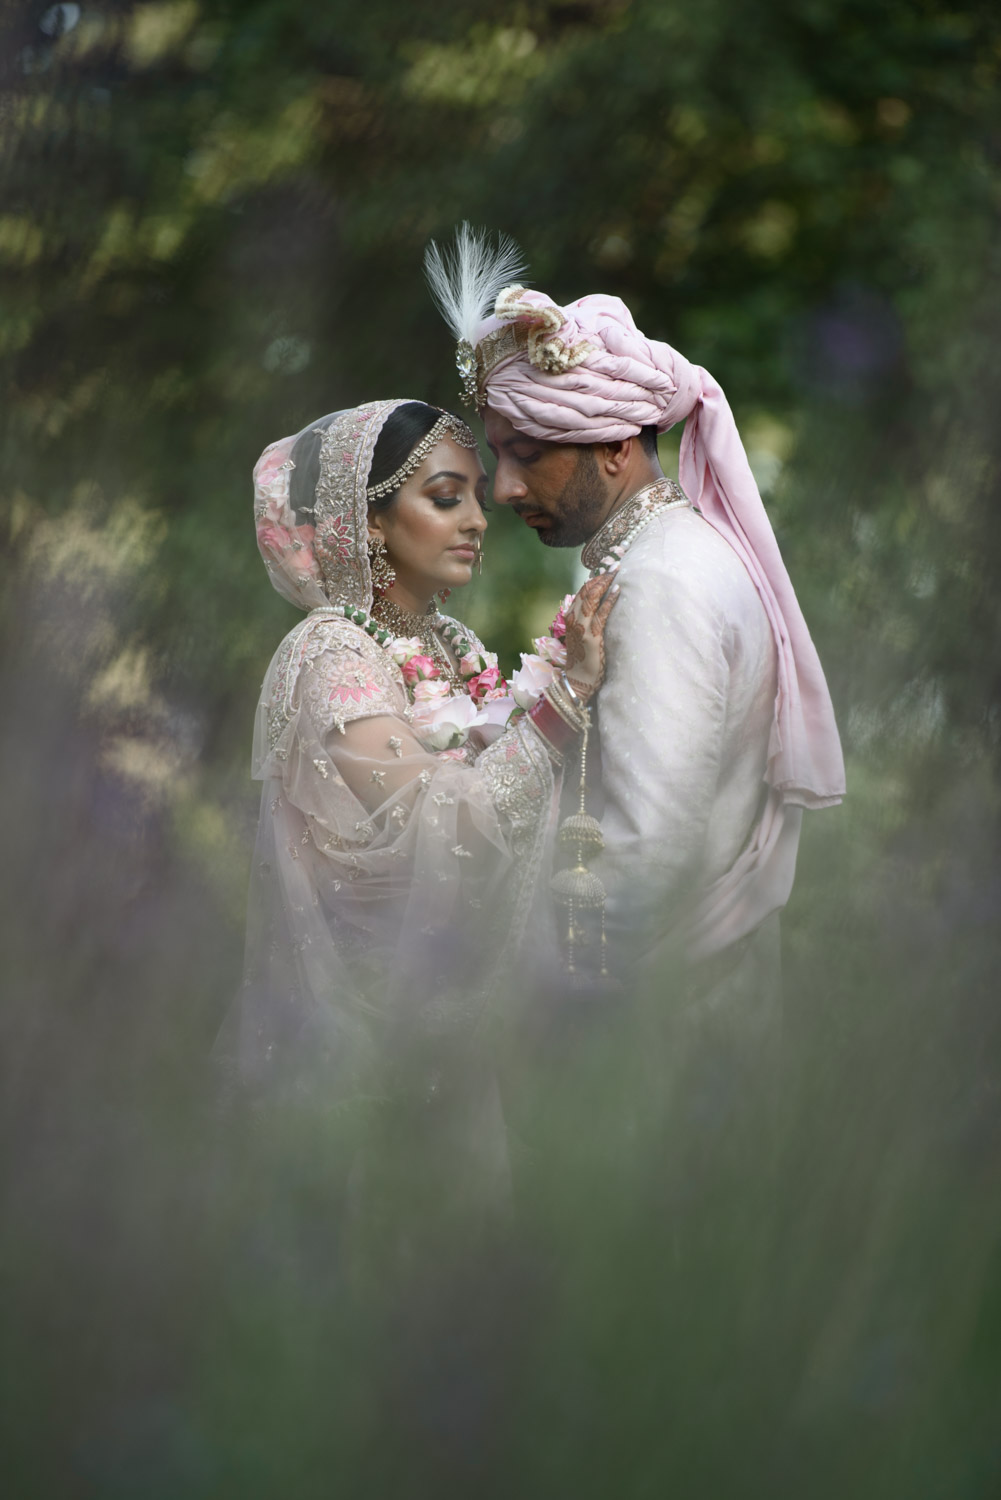 Asian Wedding Photography London - Sophie & Shohill